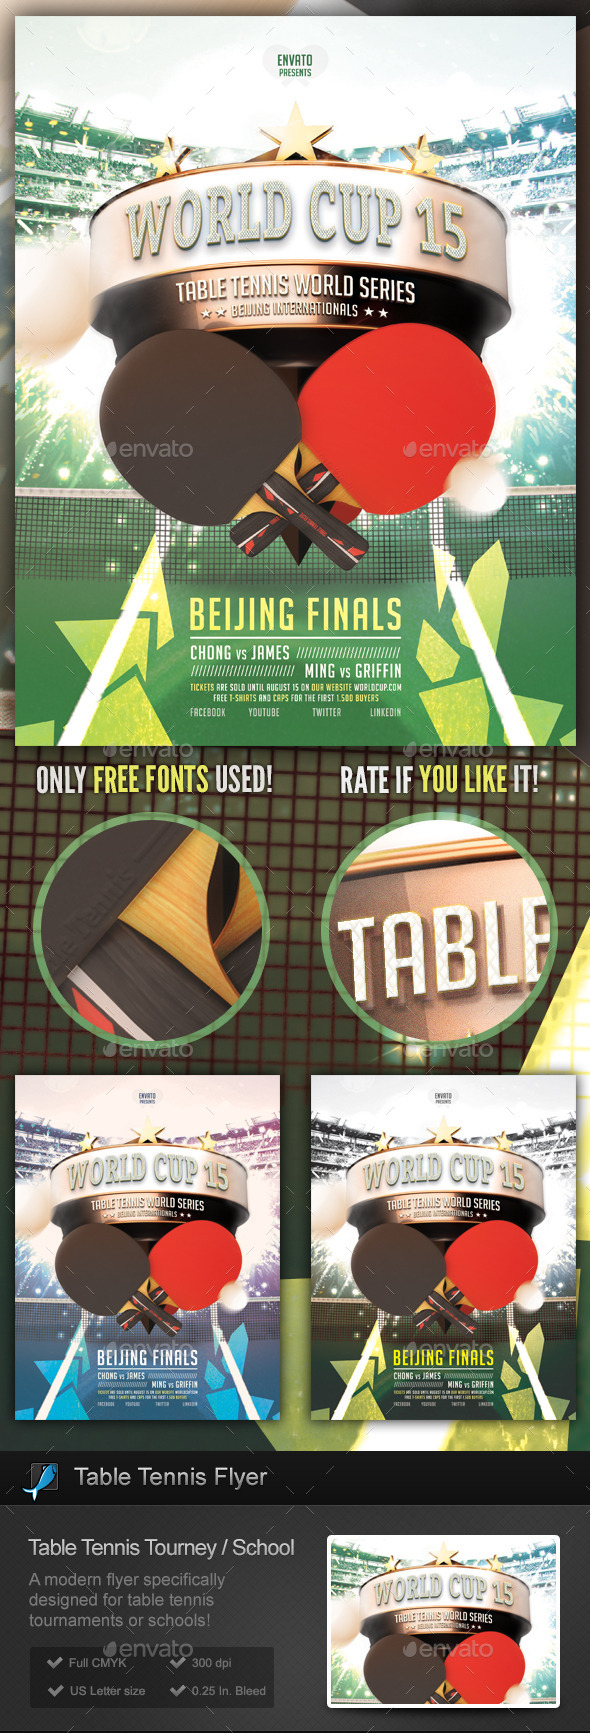 Table tennis tournament school flyer by stormdesigns graphicriver table tennis tournament school flyer sports events fandeluxe Gallery